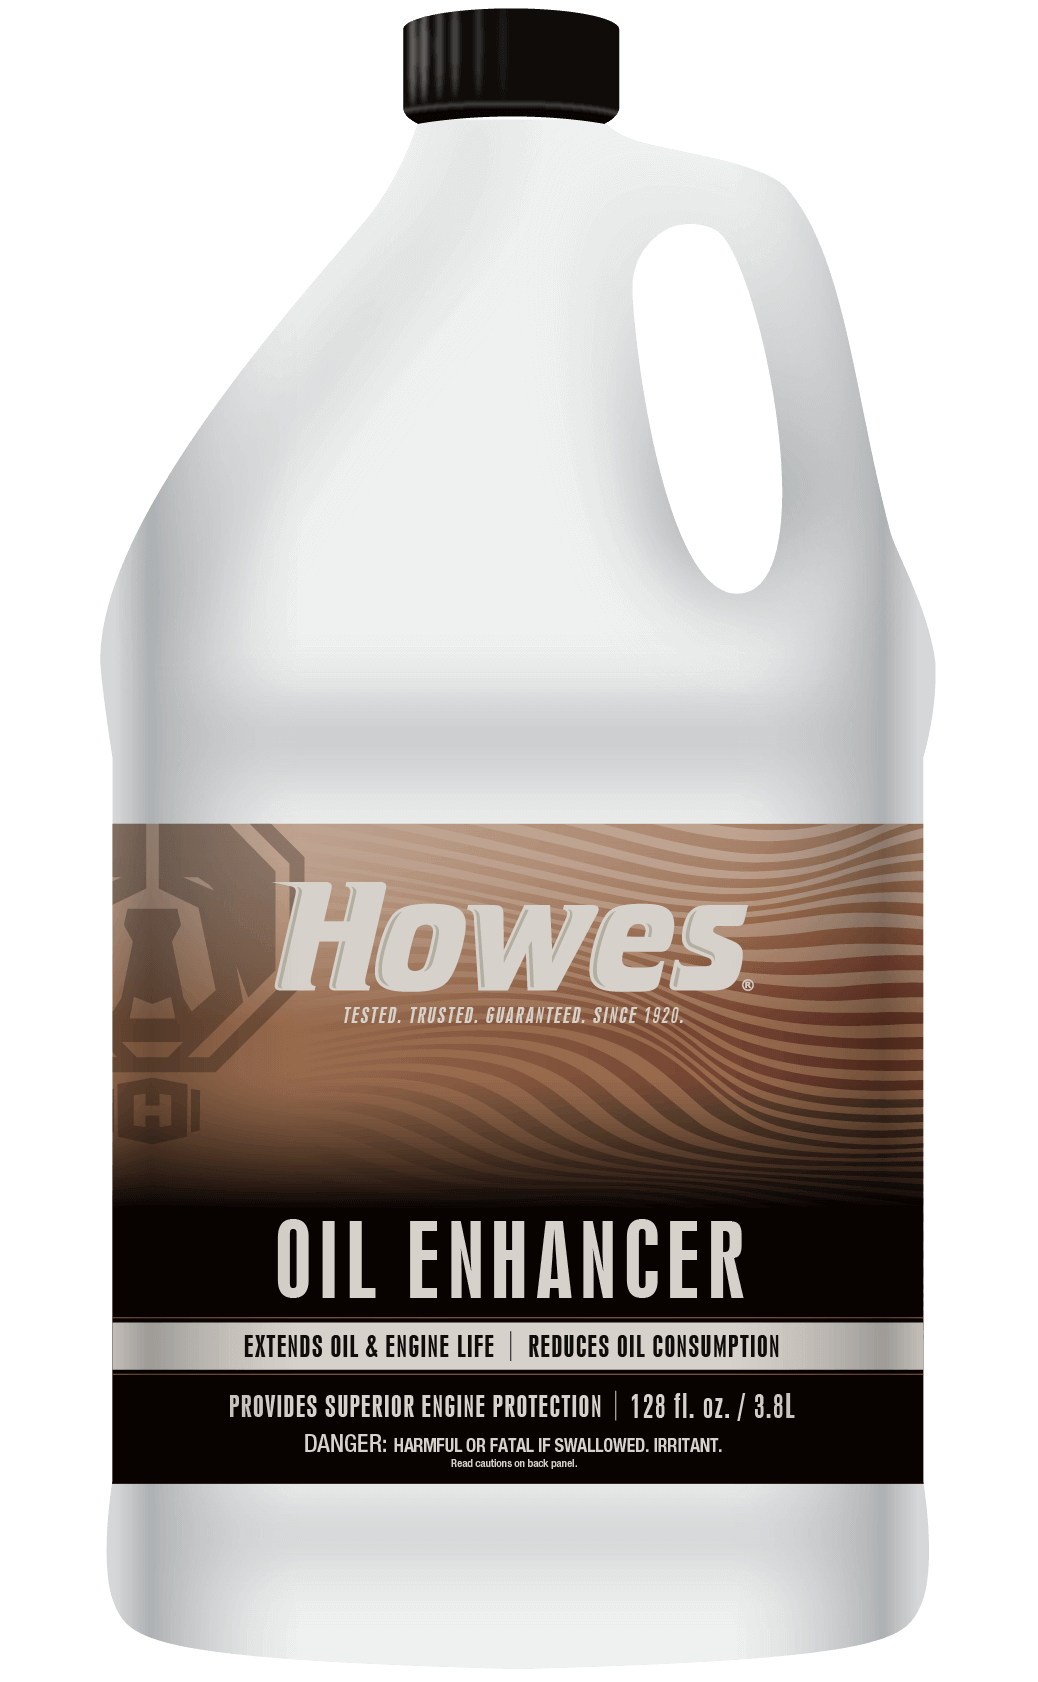 Oil Enhancer